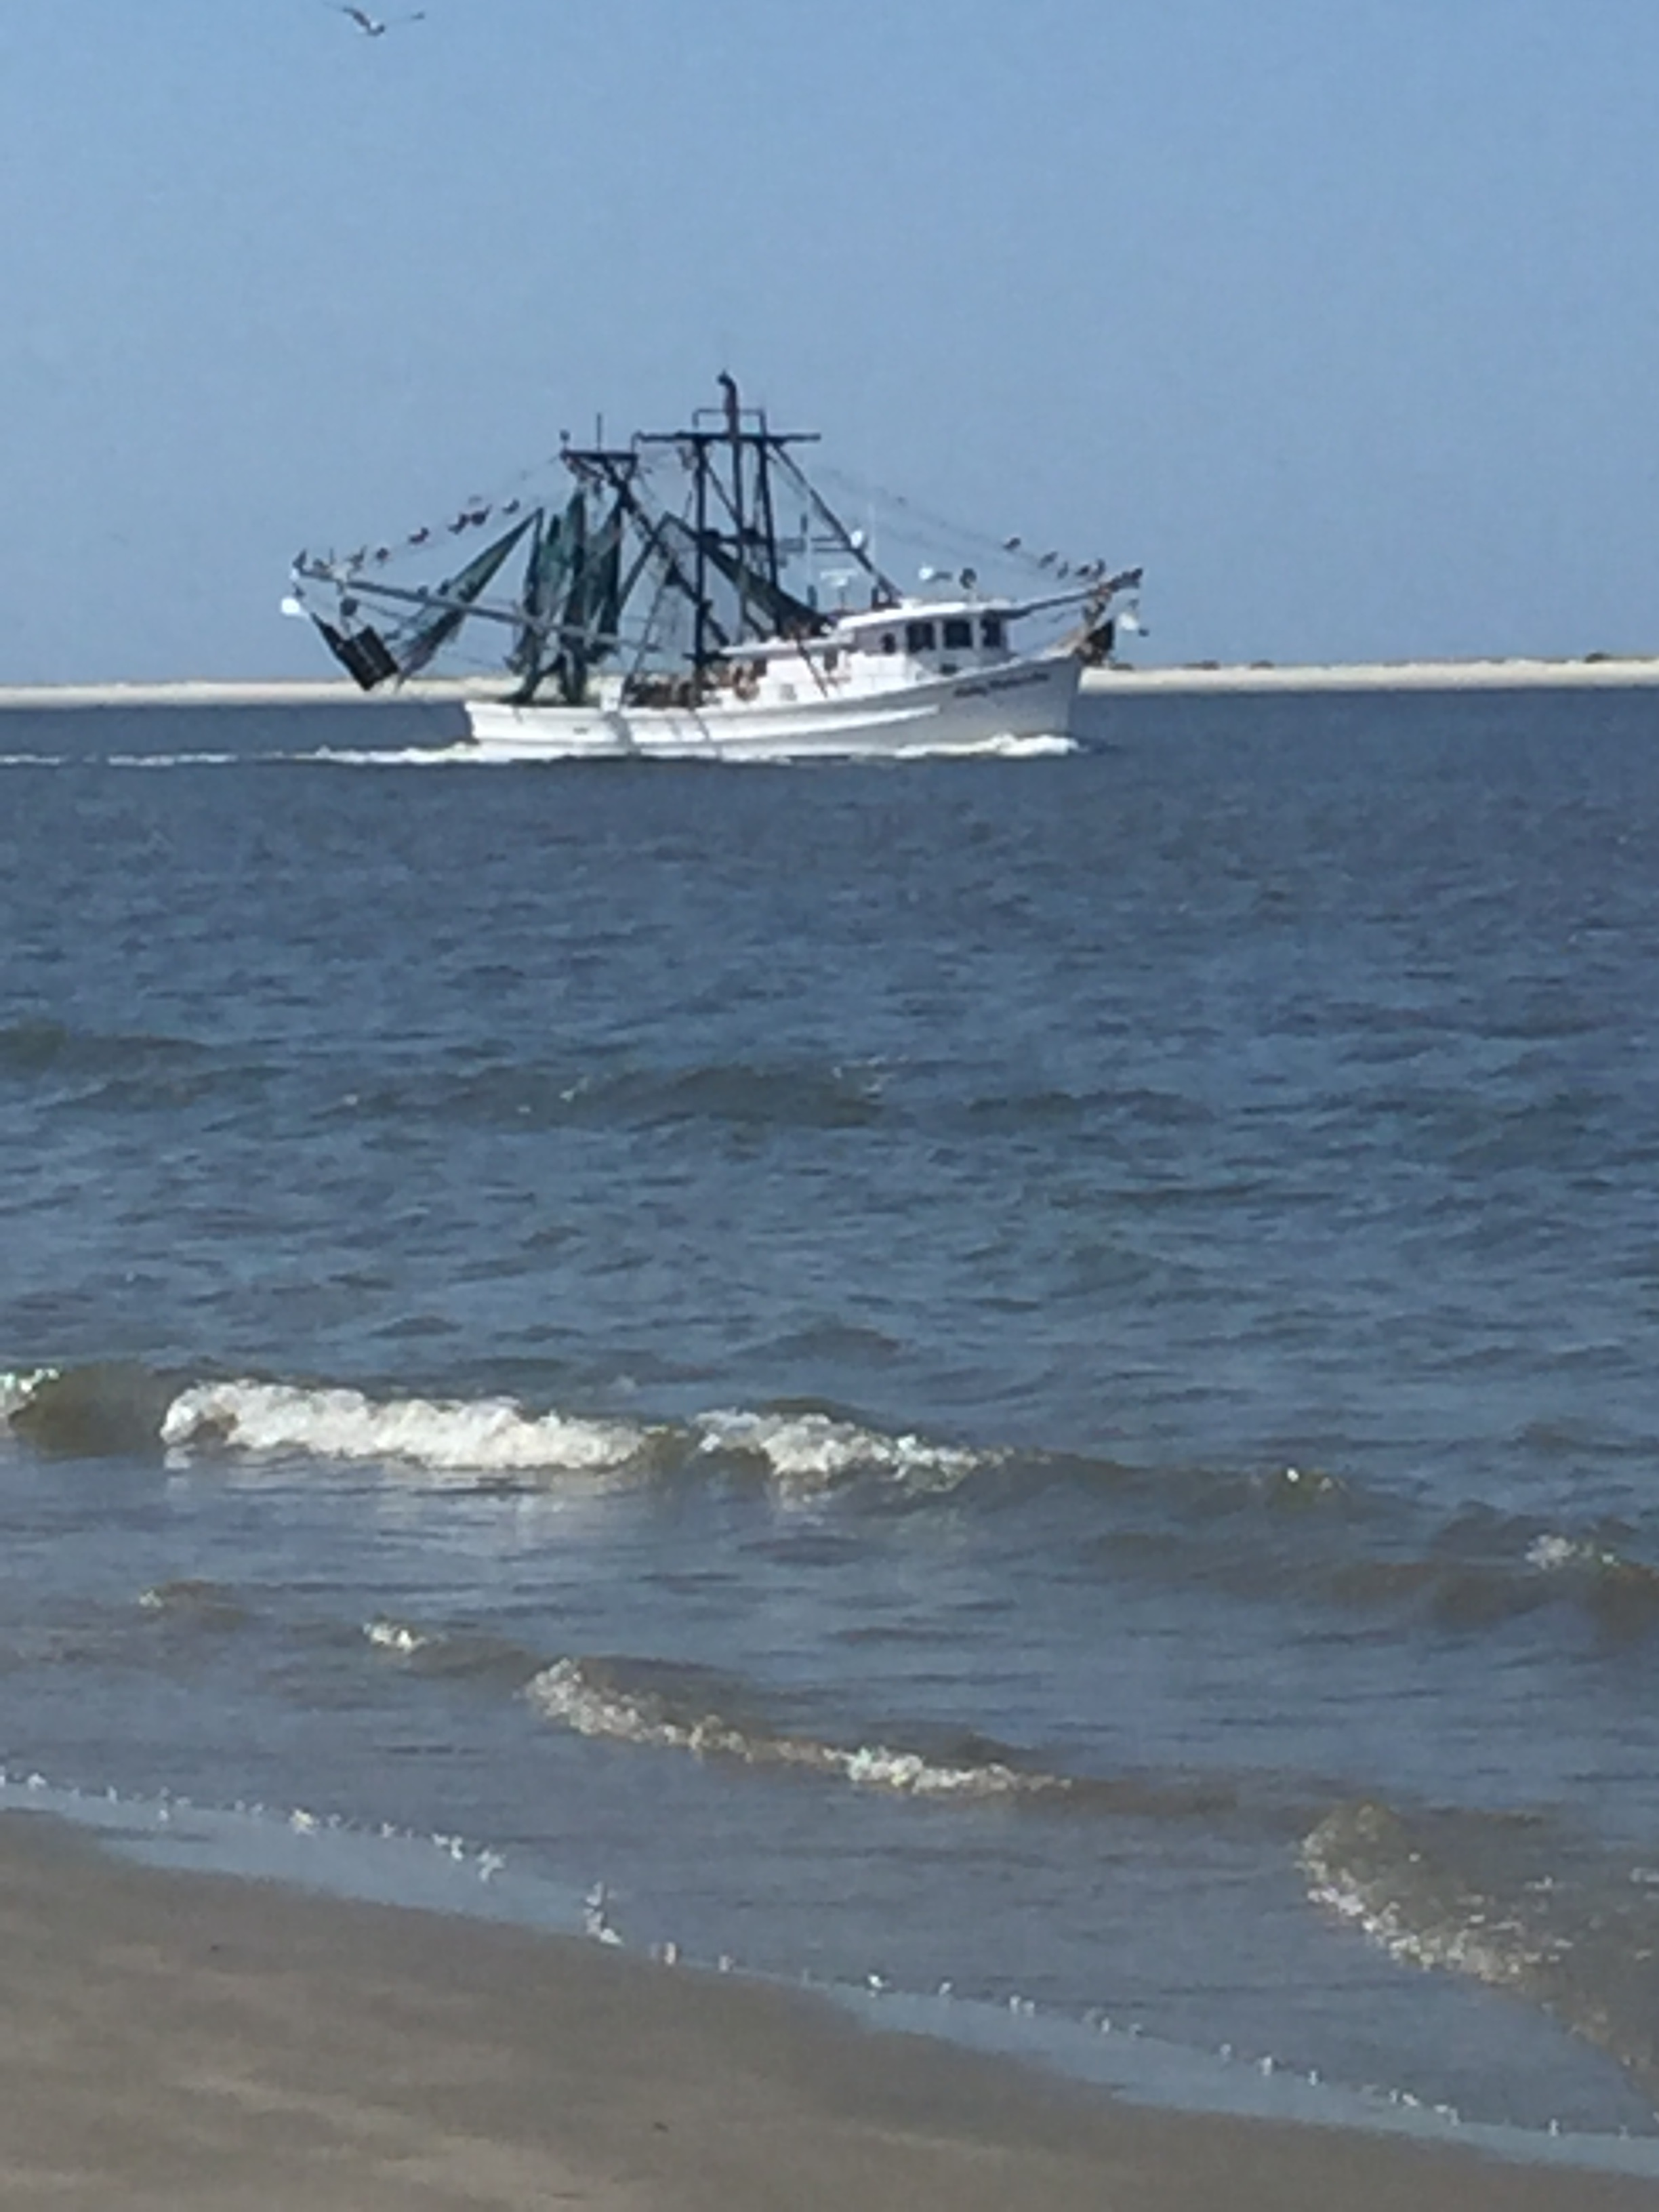 Watch the shrimp boats float by.